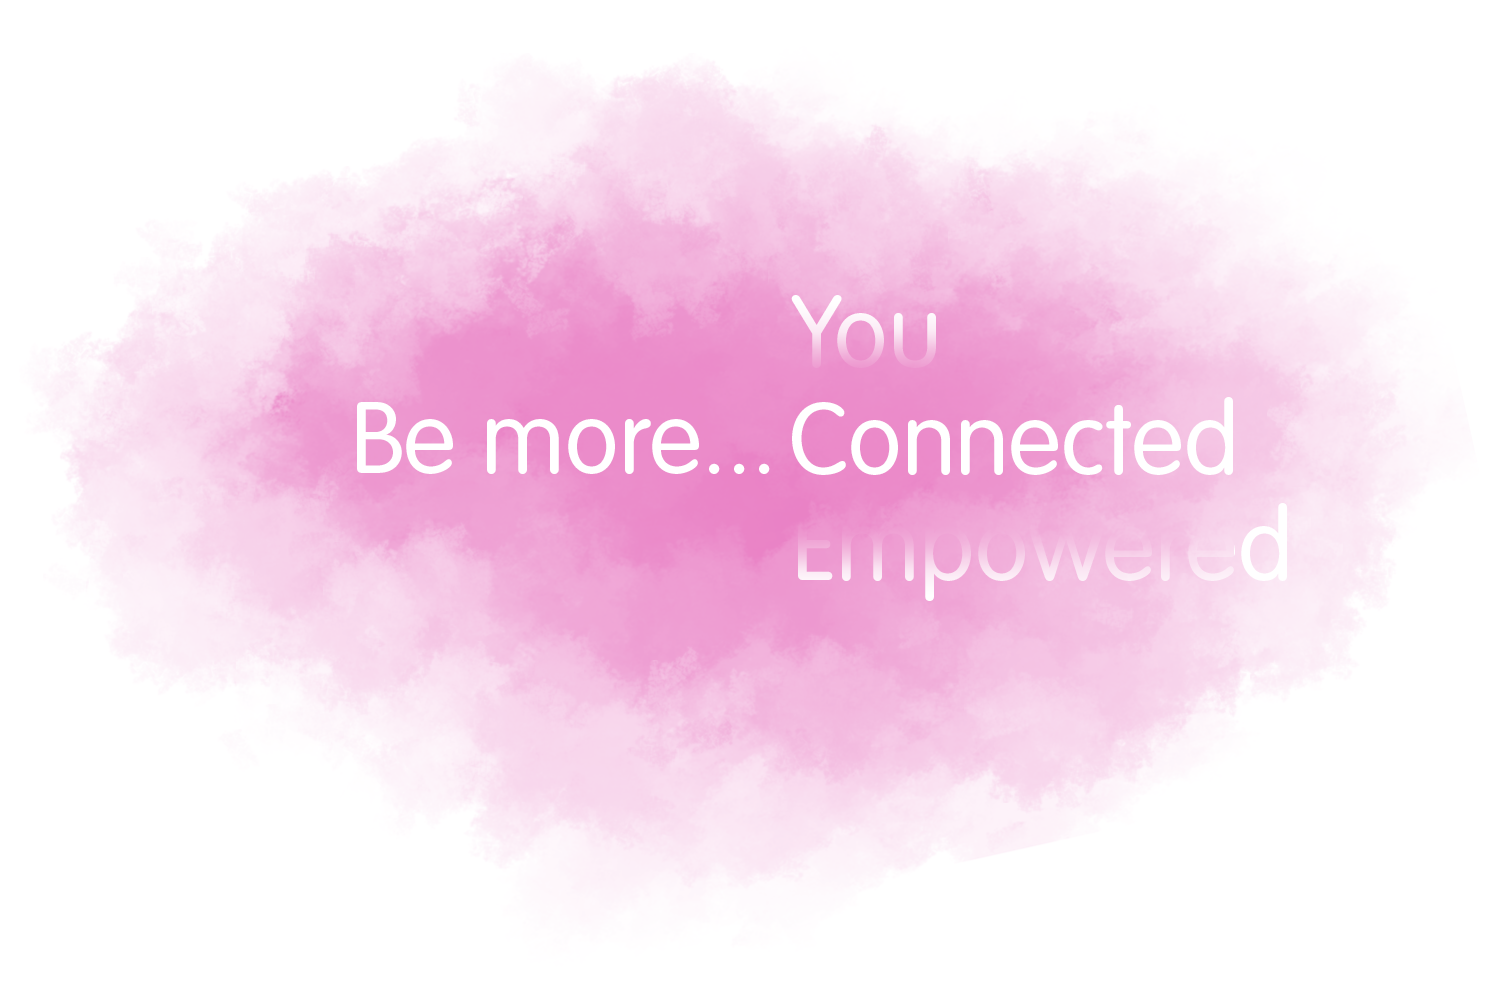 BLC Blog - Be more... Connected